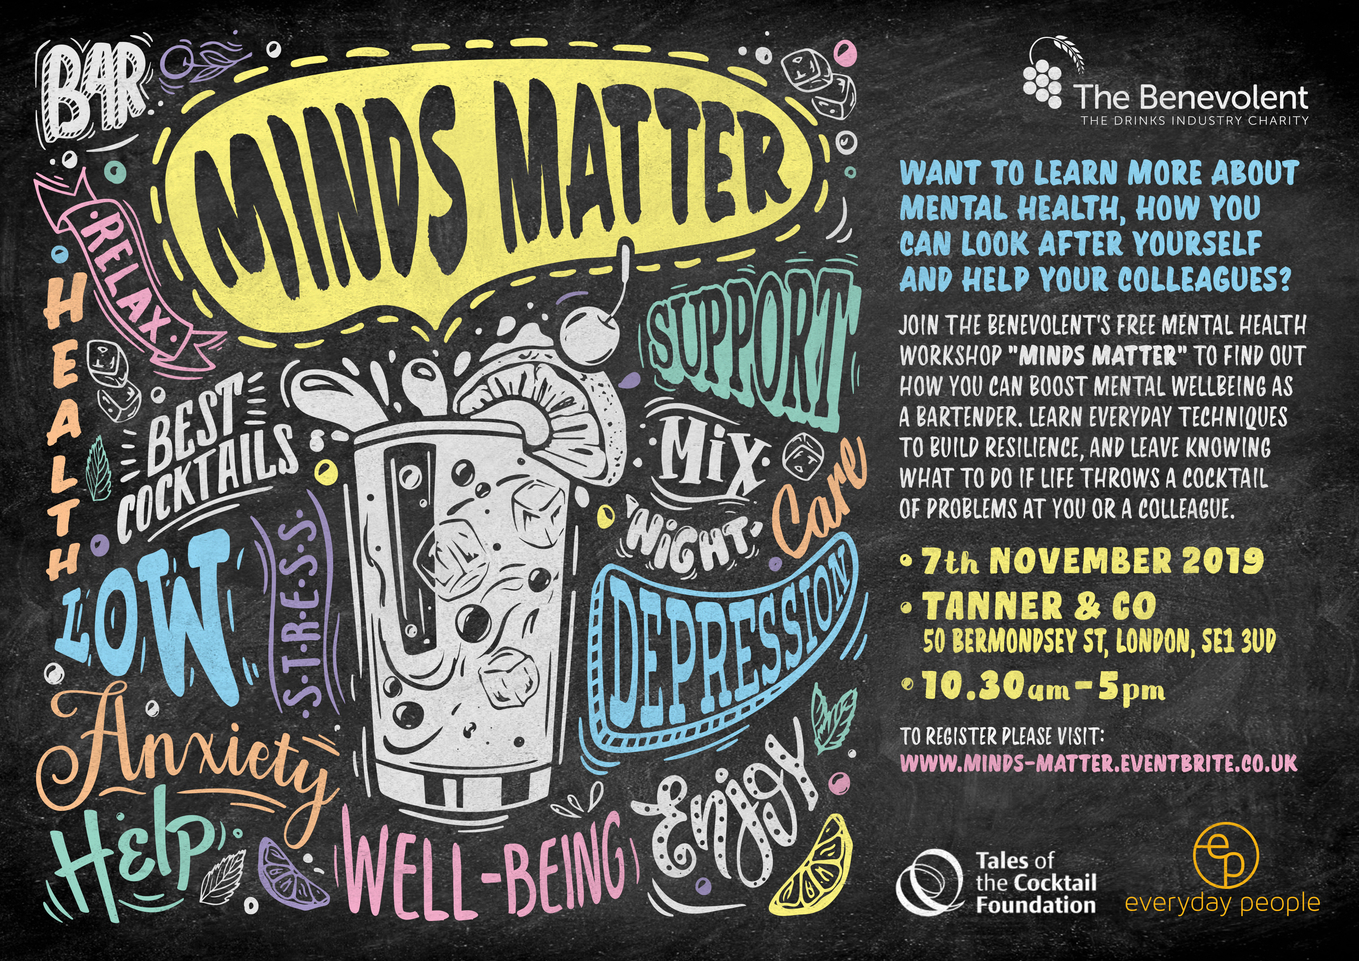 Minds Matter workshop by The Benevolent image 1